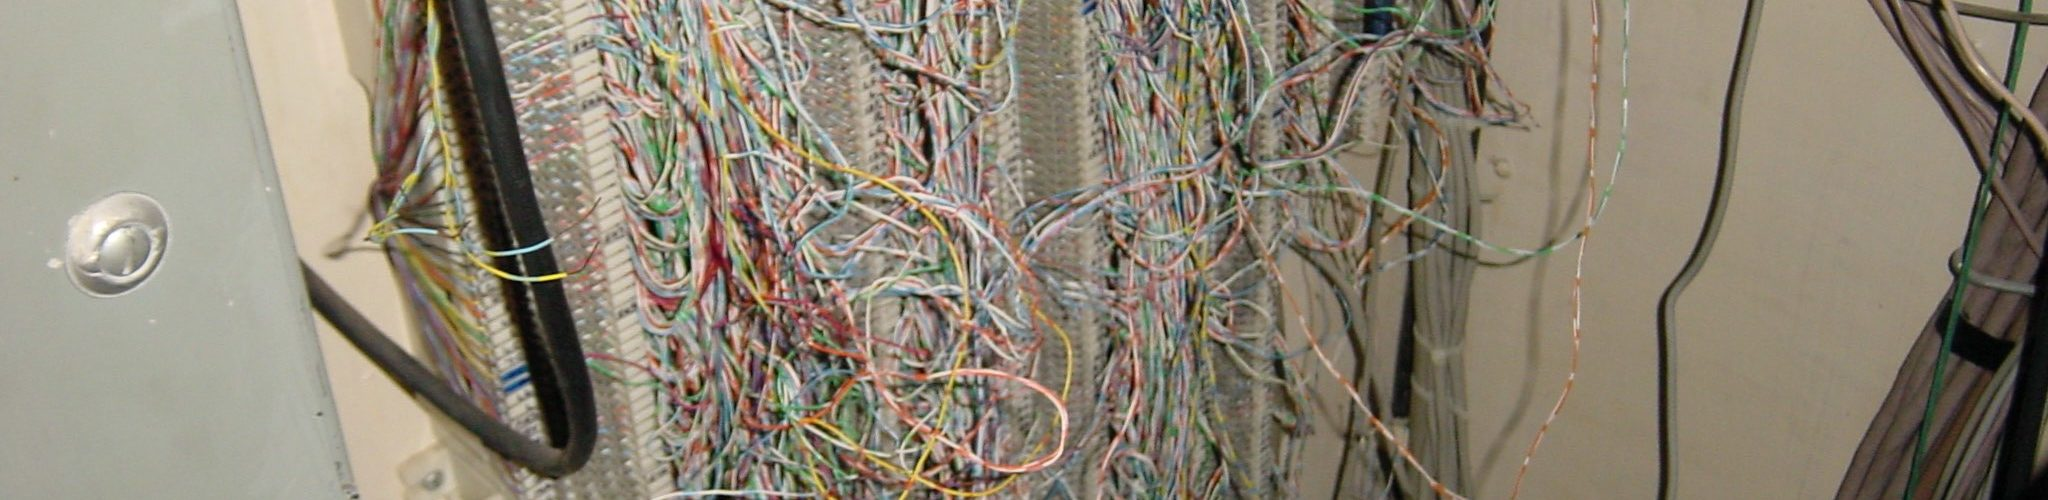 What do you think of this wiring mess?